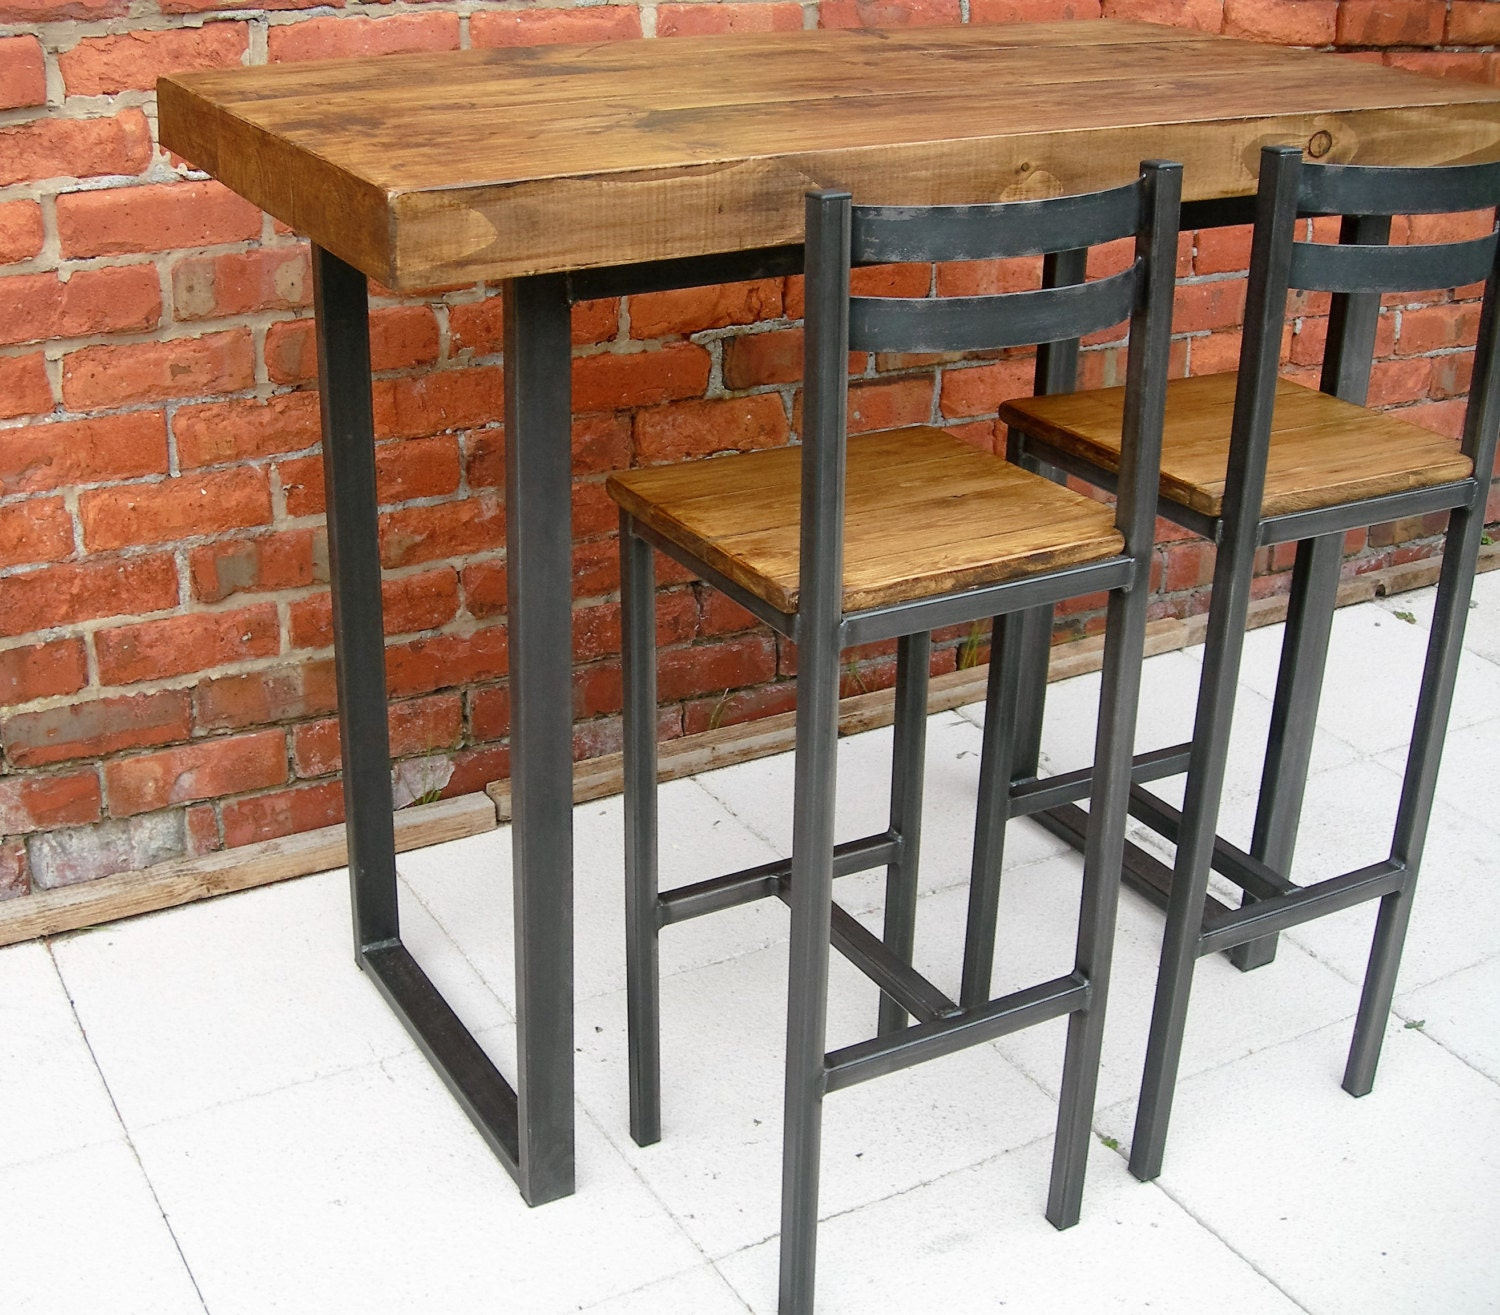 Breakfast bar table & bar stools rustic industrial bar table